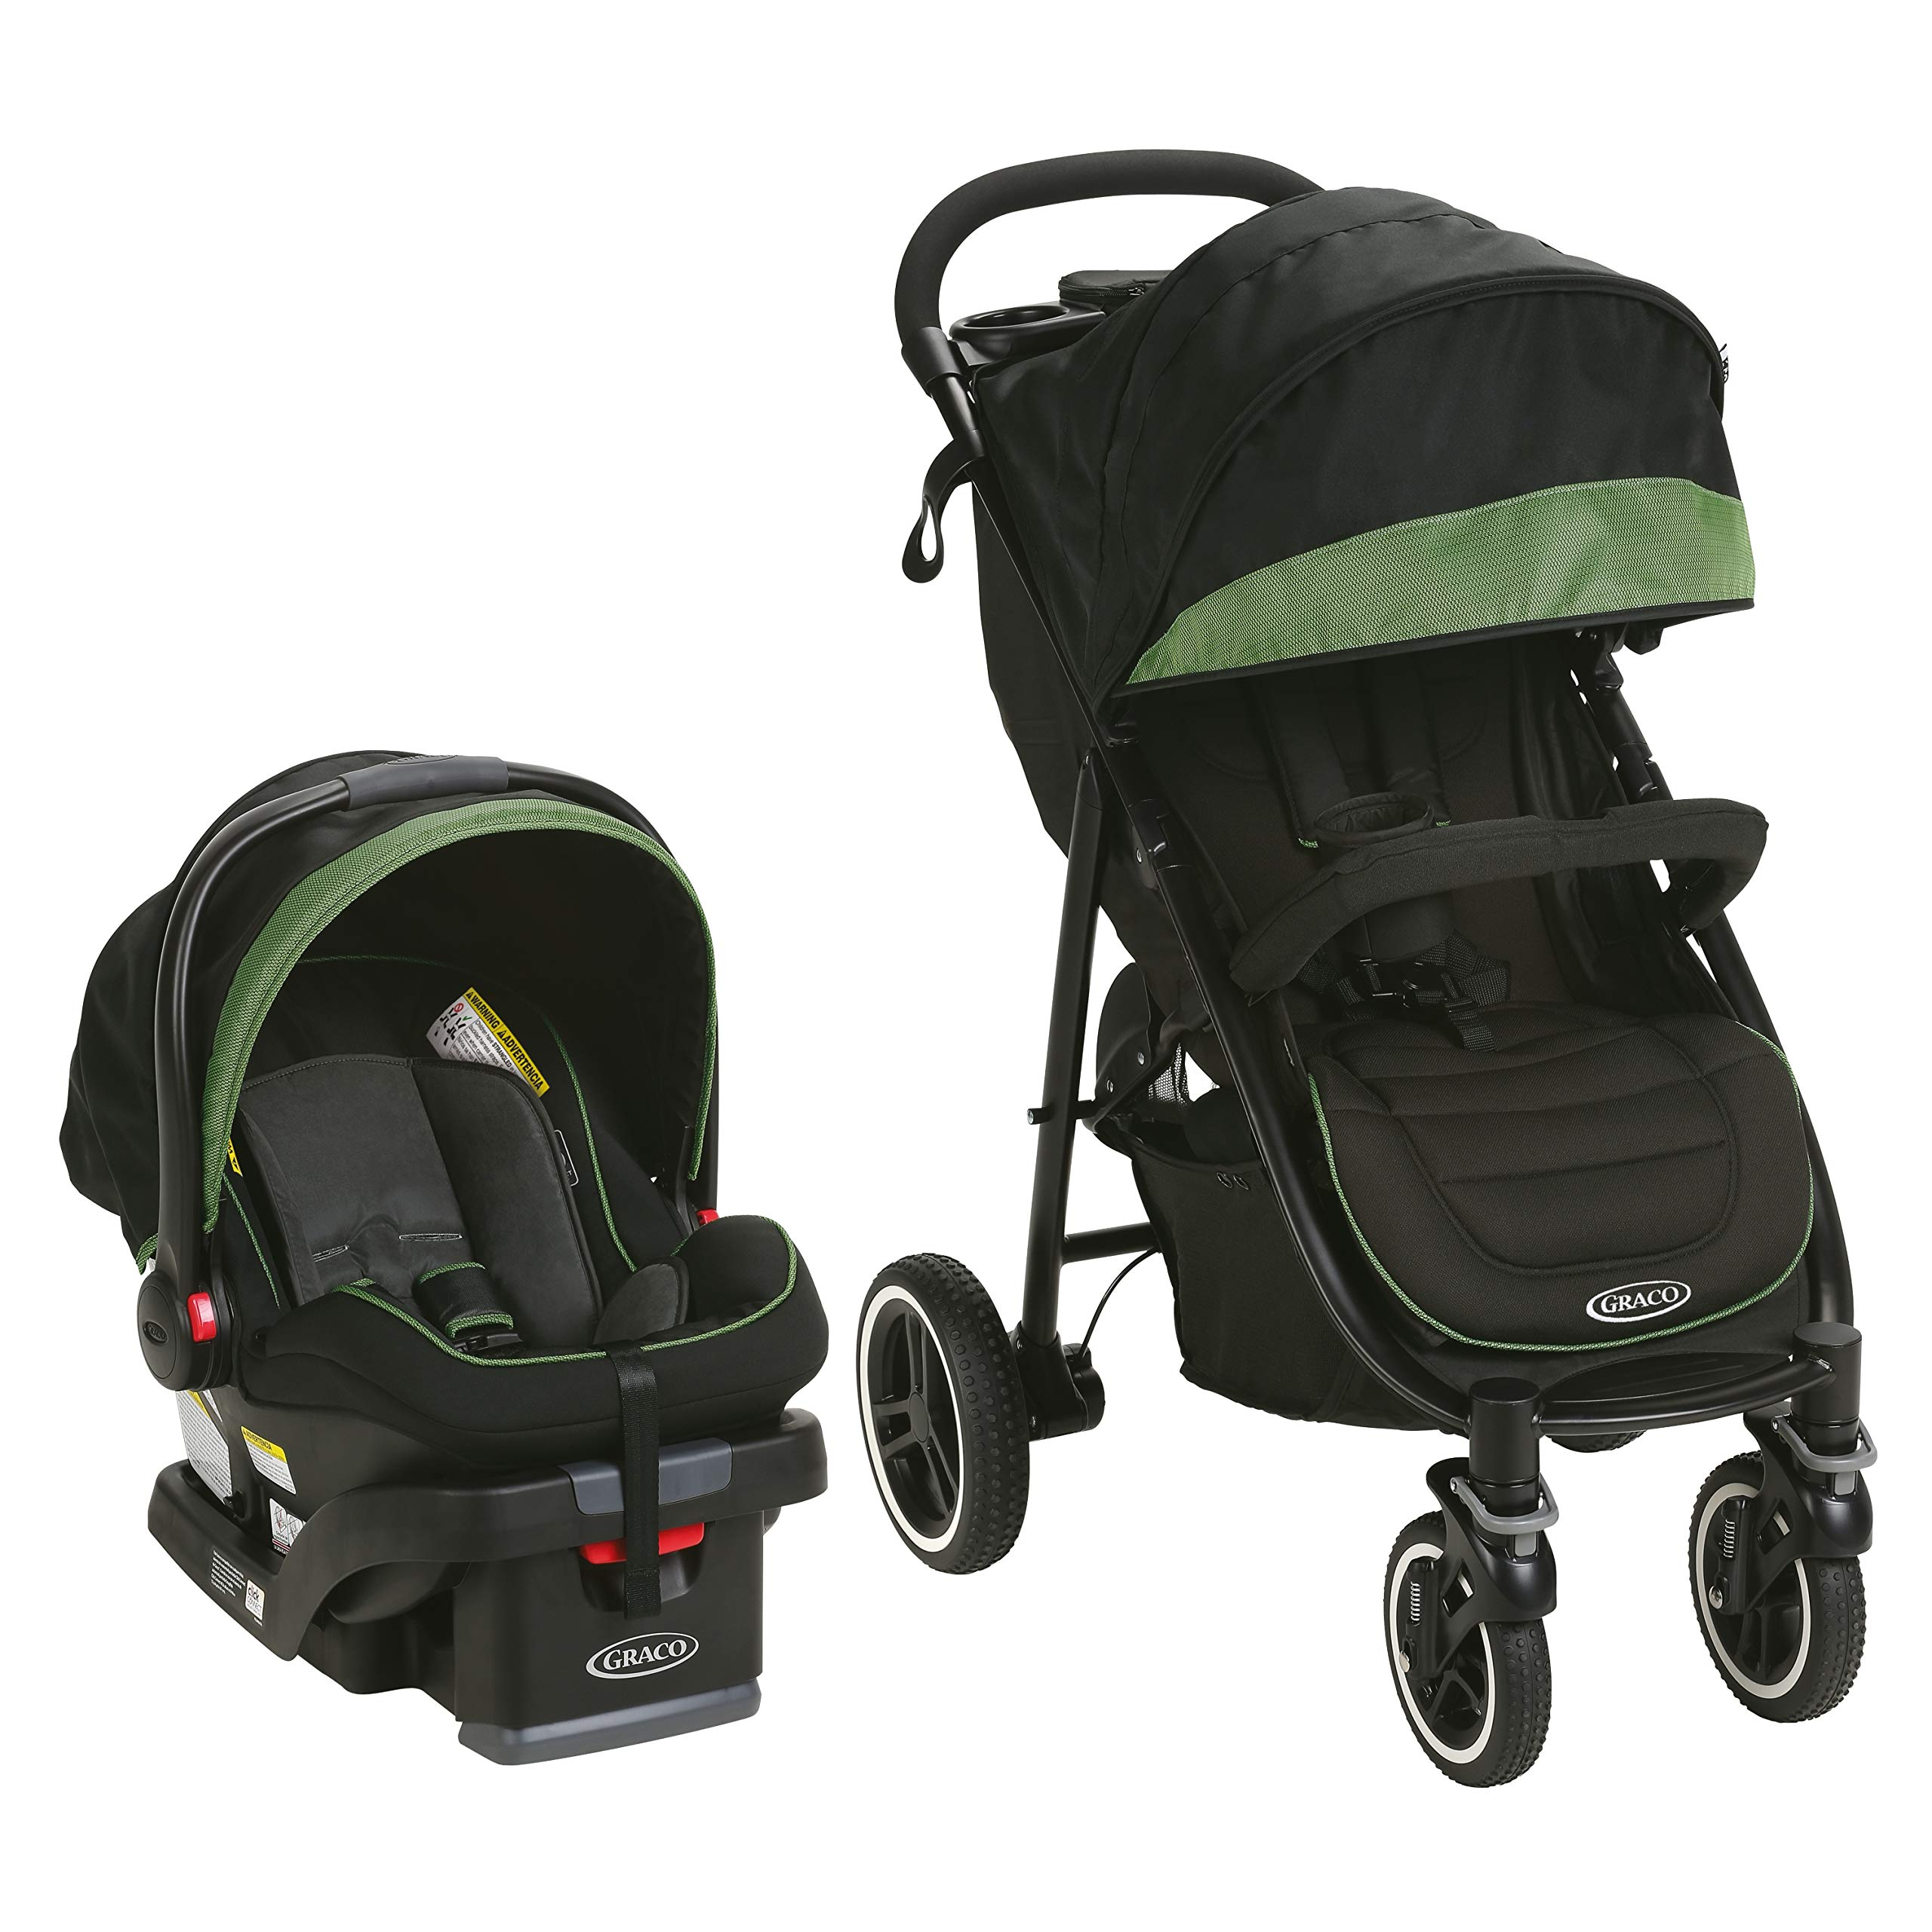 Graco Aire4 XT Travel System, Emory by Graco (Image #3)